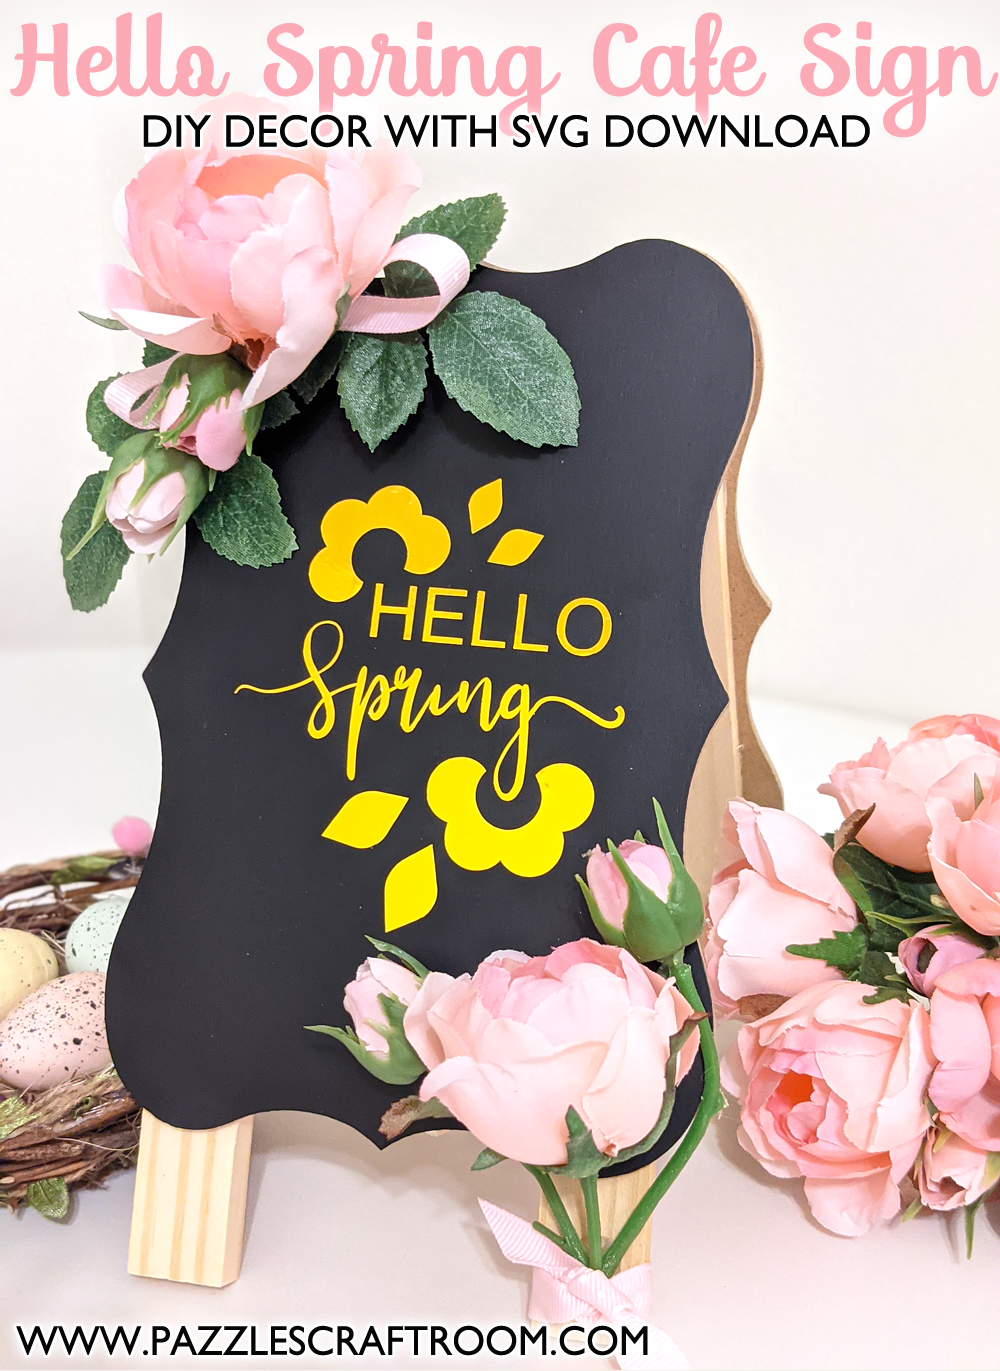 Pazzles DIY Hello Spring Cafe Sign with instant SVG download. Instant SVG download compatible with all major electronic cutters including Pazzles Inspiration, Cricut, and Silhouette Cameo. Design by Monica Martinez.